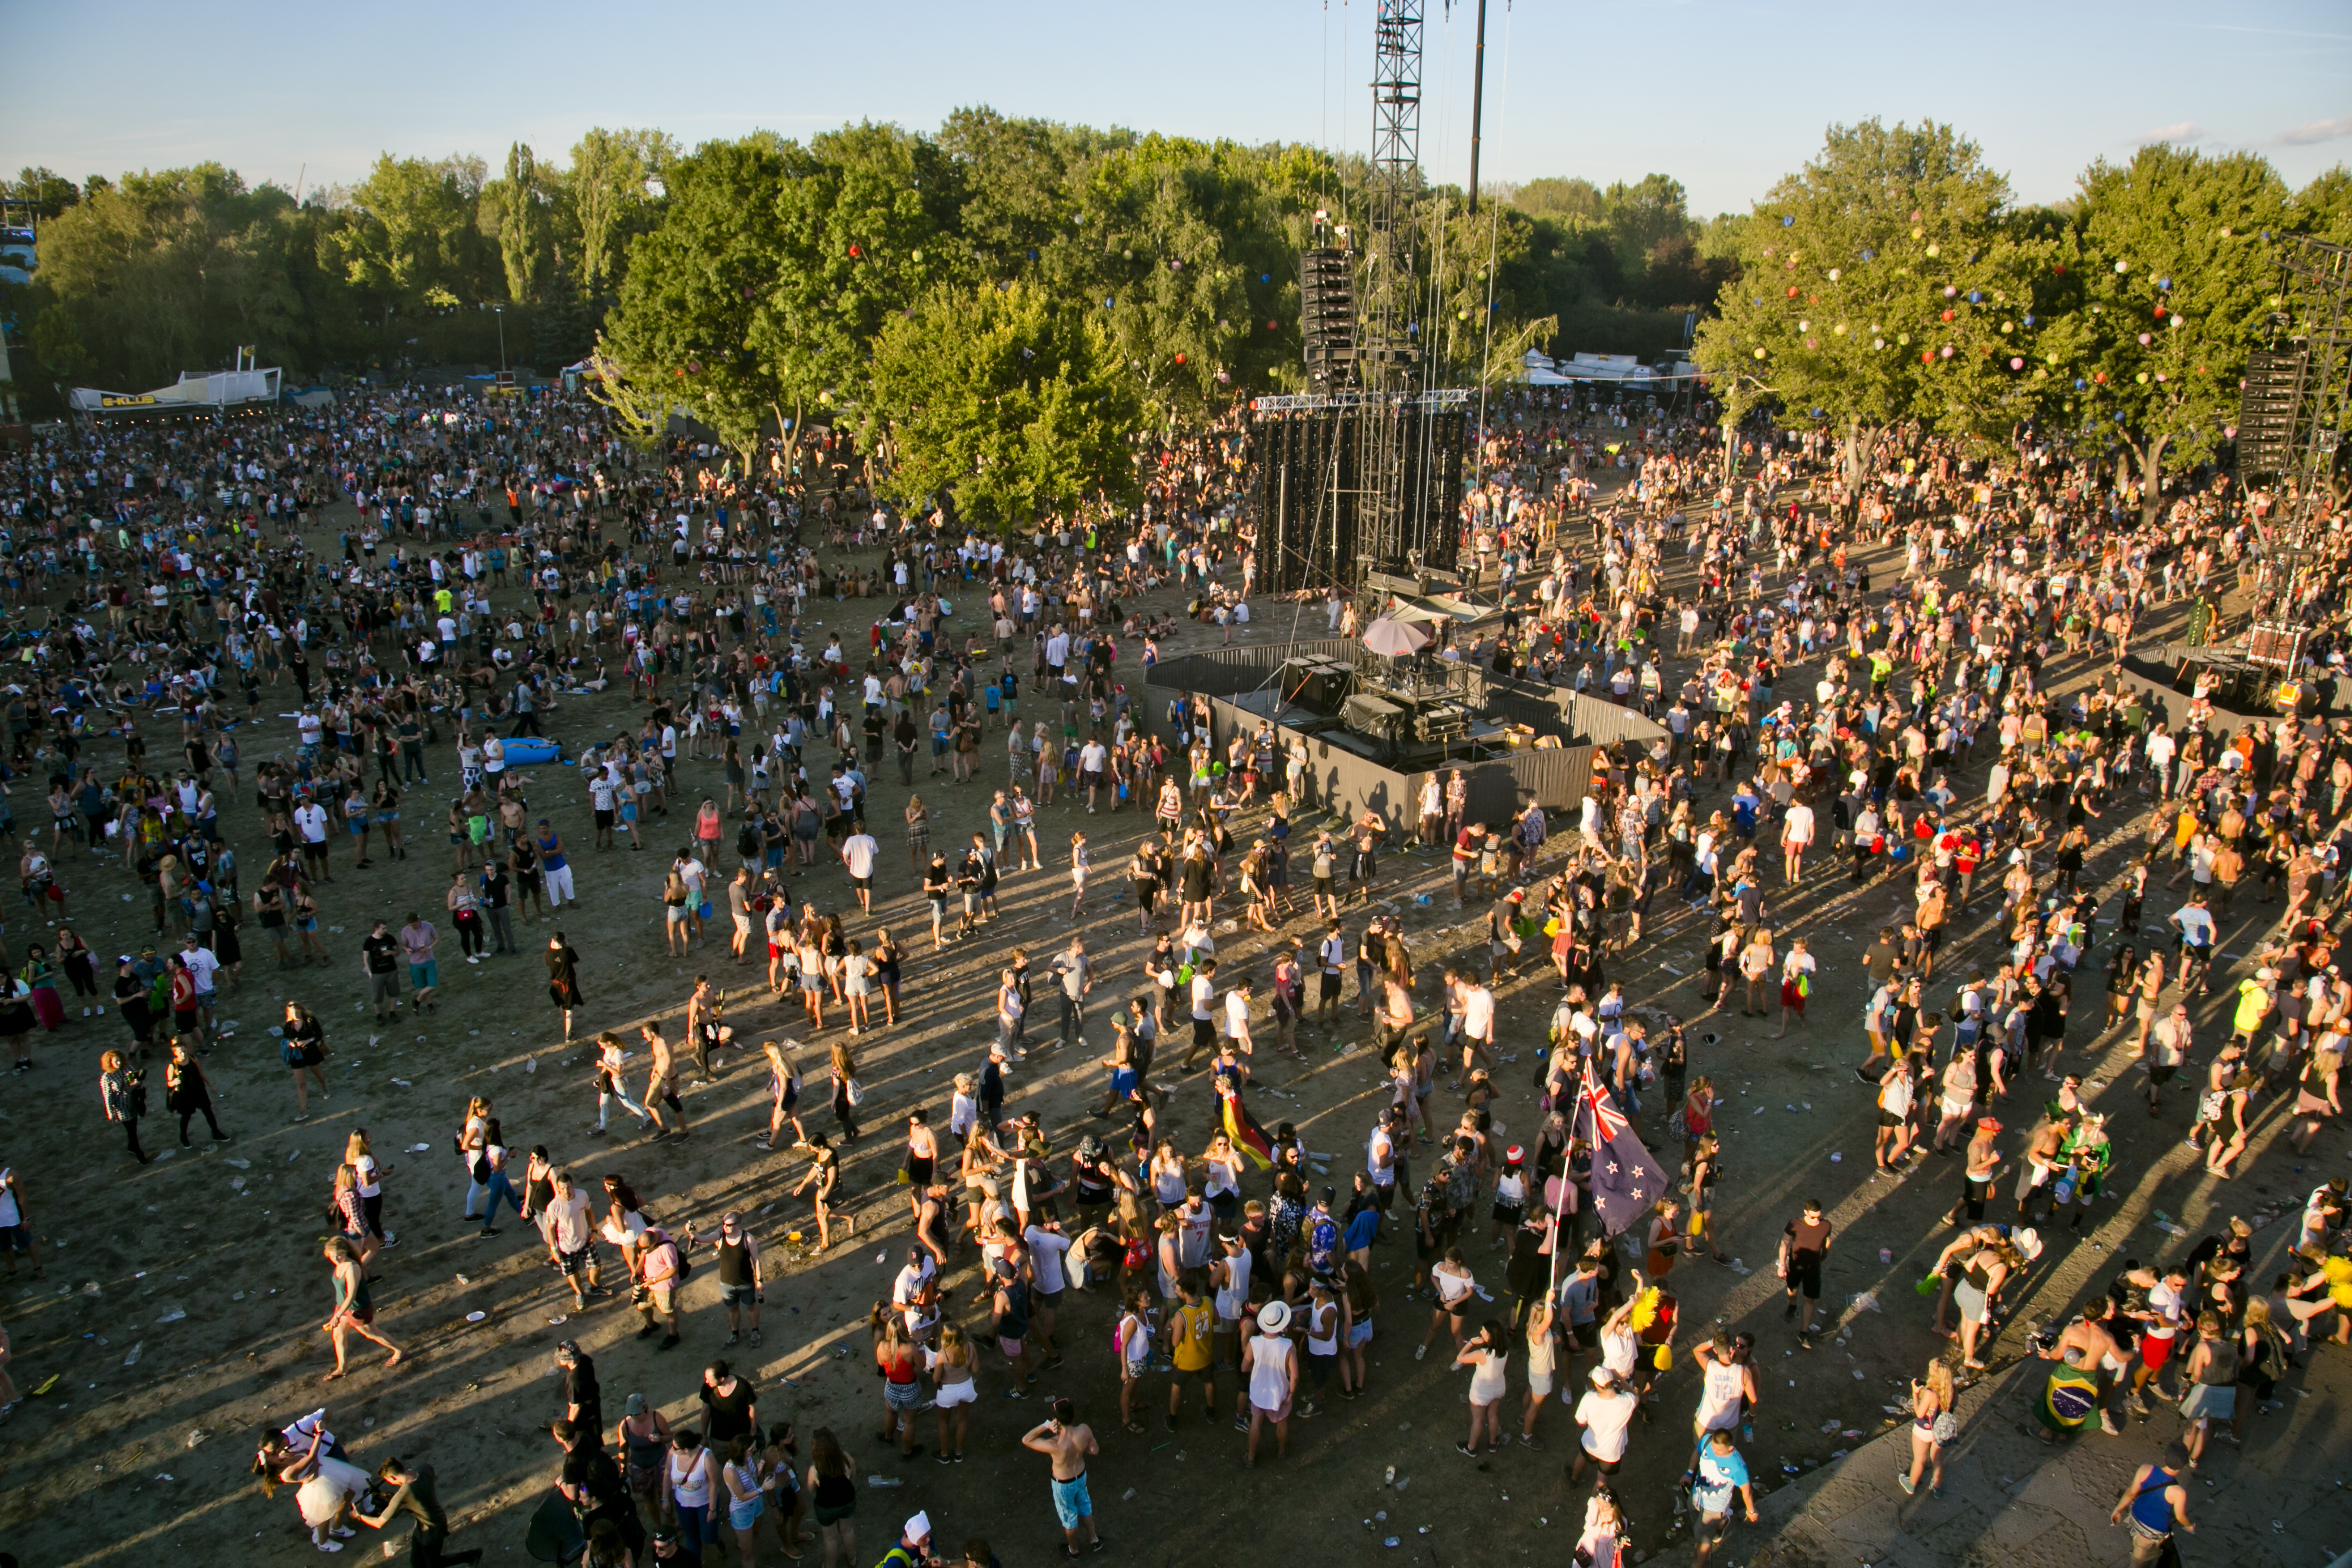 Crowd & Atmosphere at Sziget Festival, Budapest, Hungary - 14 August 2016